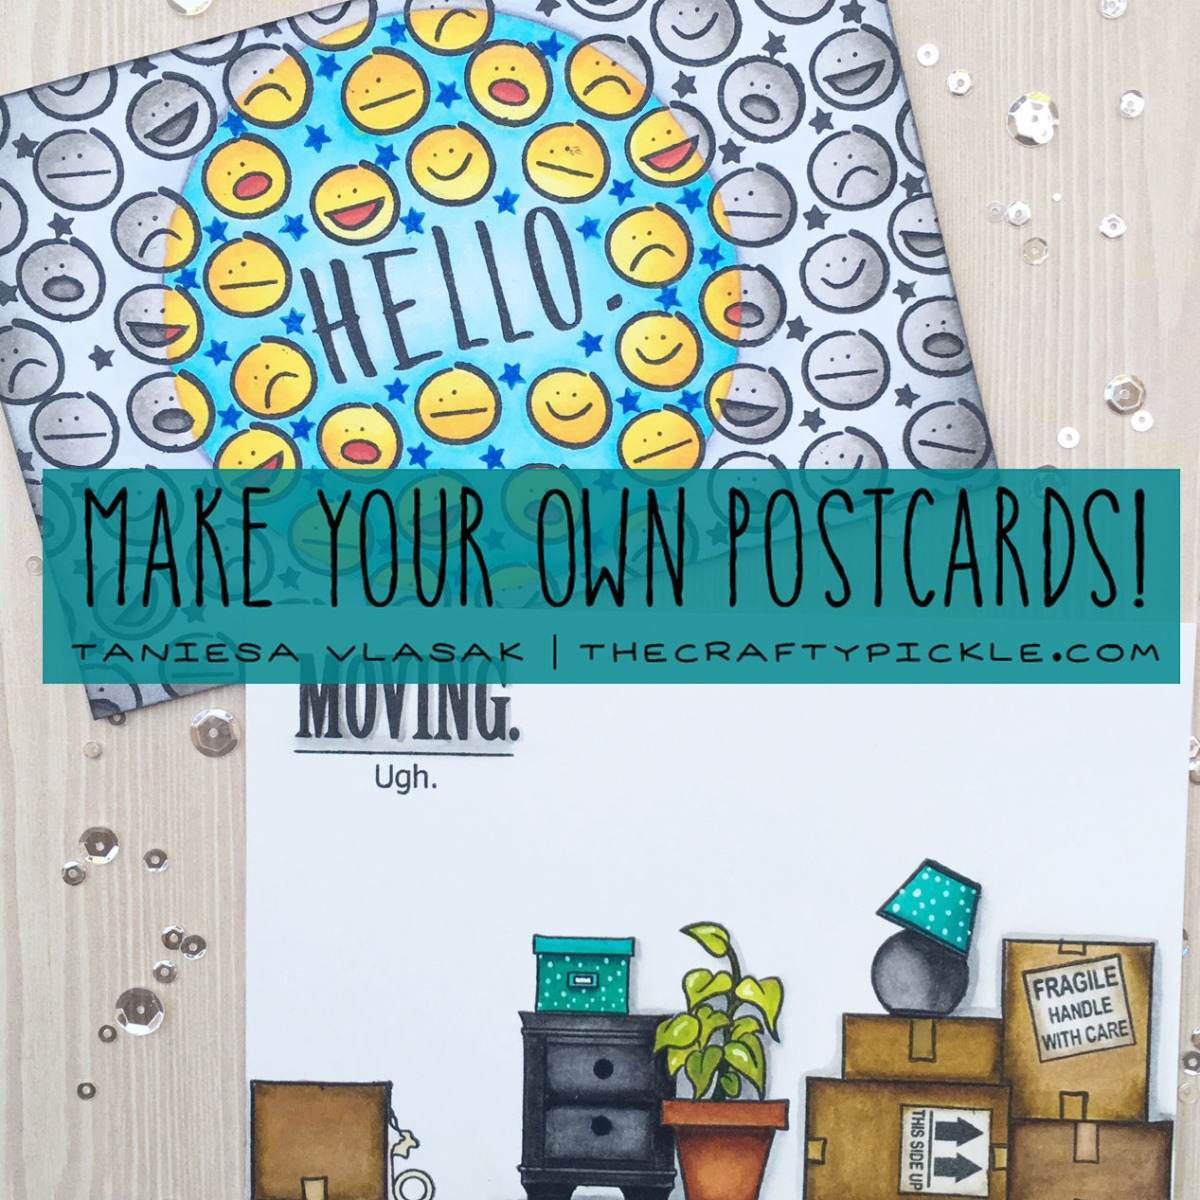 Create your own Handmade Postcards!